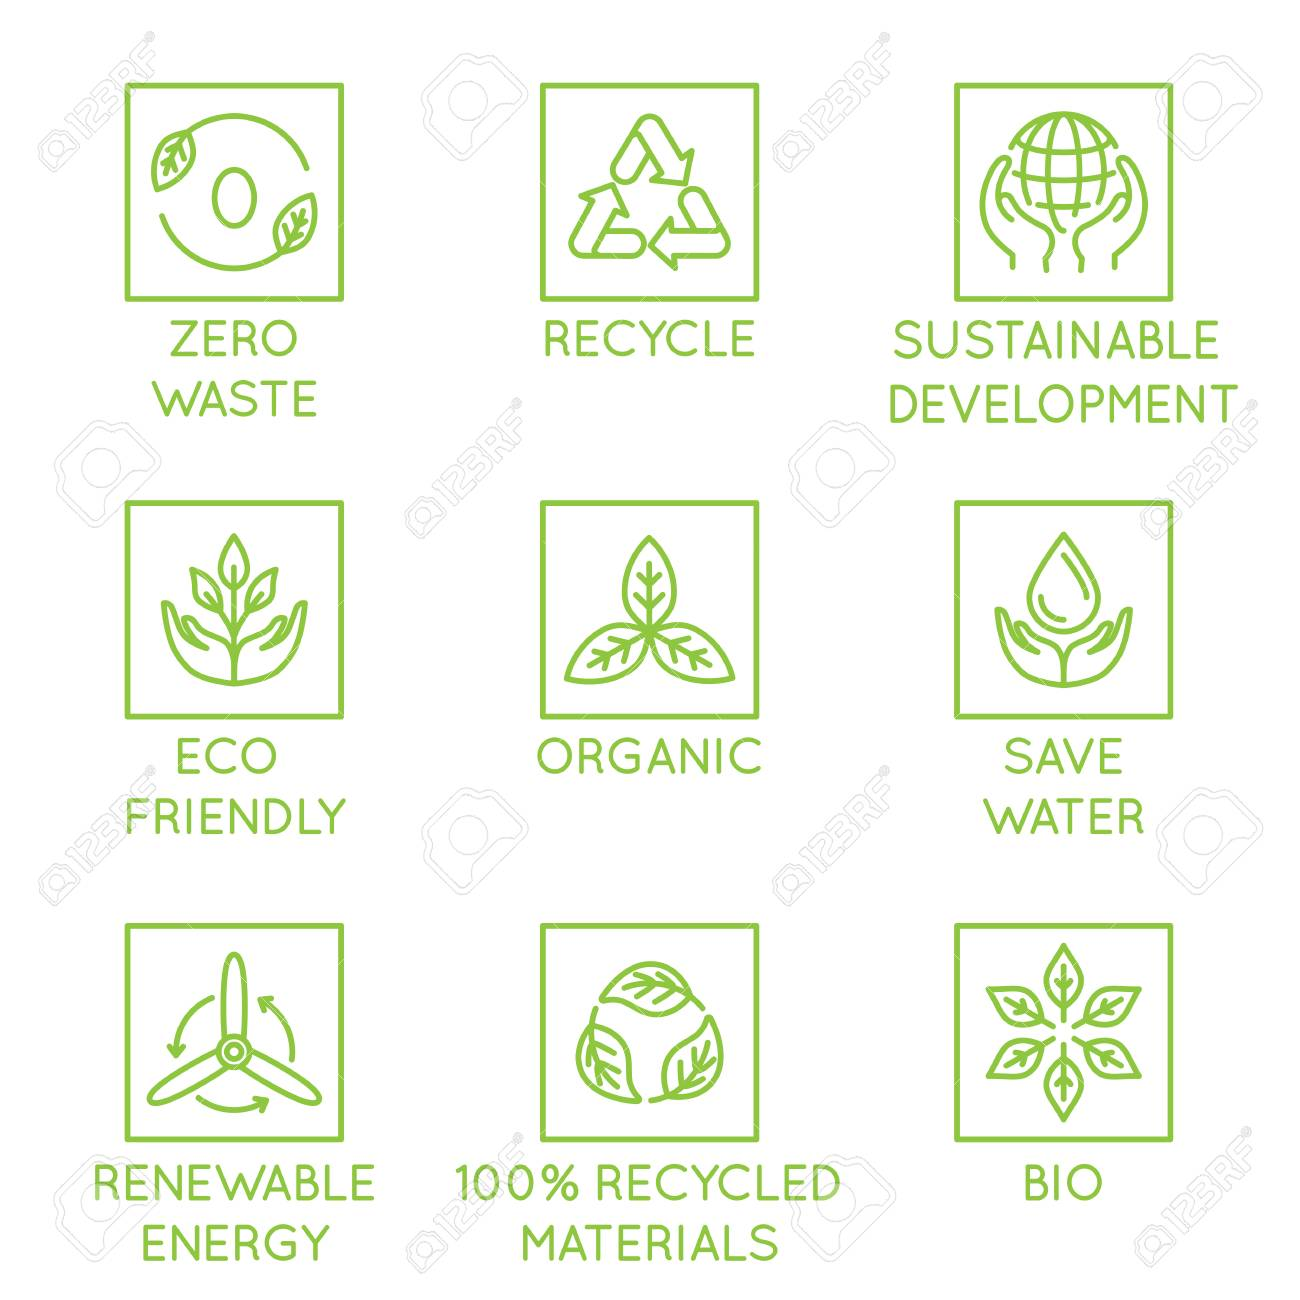 Vector set of design elements, logo design template, icons and badges for natural and organic ecological products in trendy linear style - zero waste, recycle, sustainable, development, eco friendly, organic, save water, renewable energy - 106275732